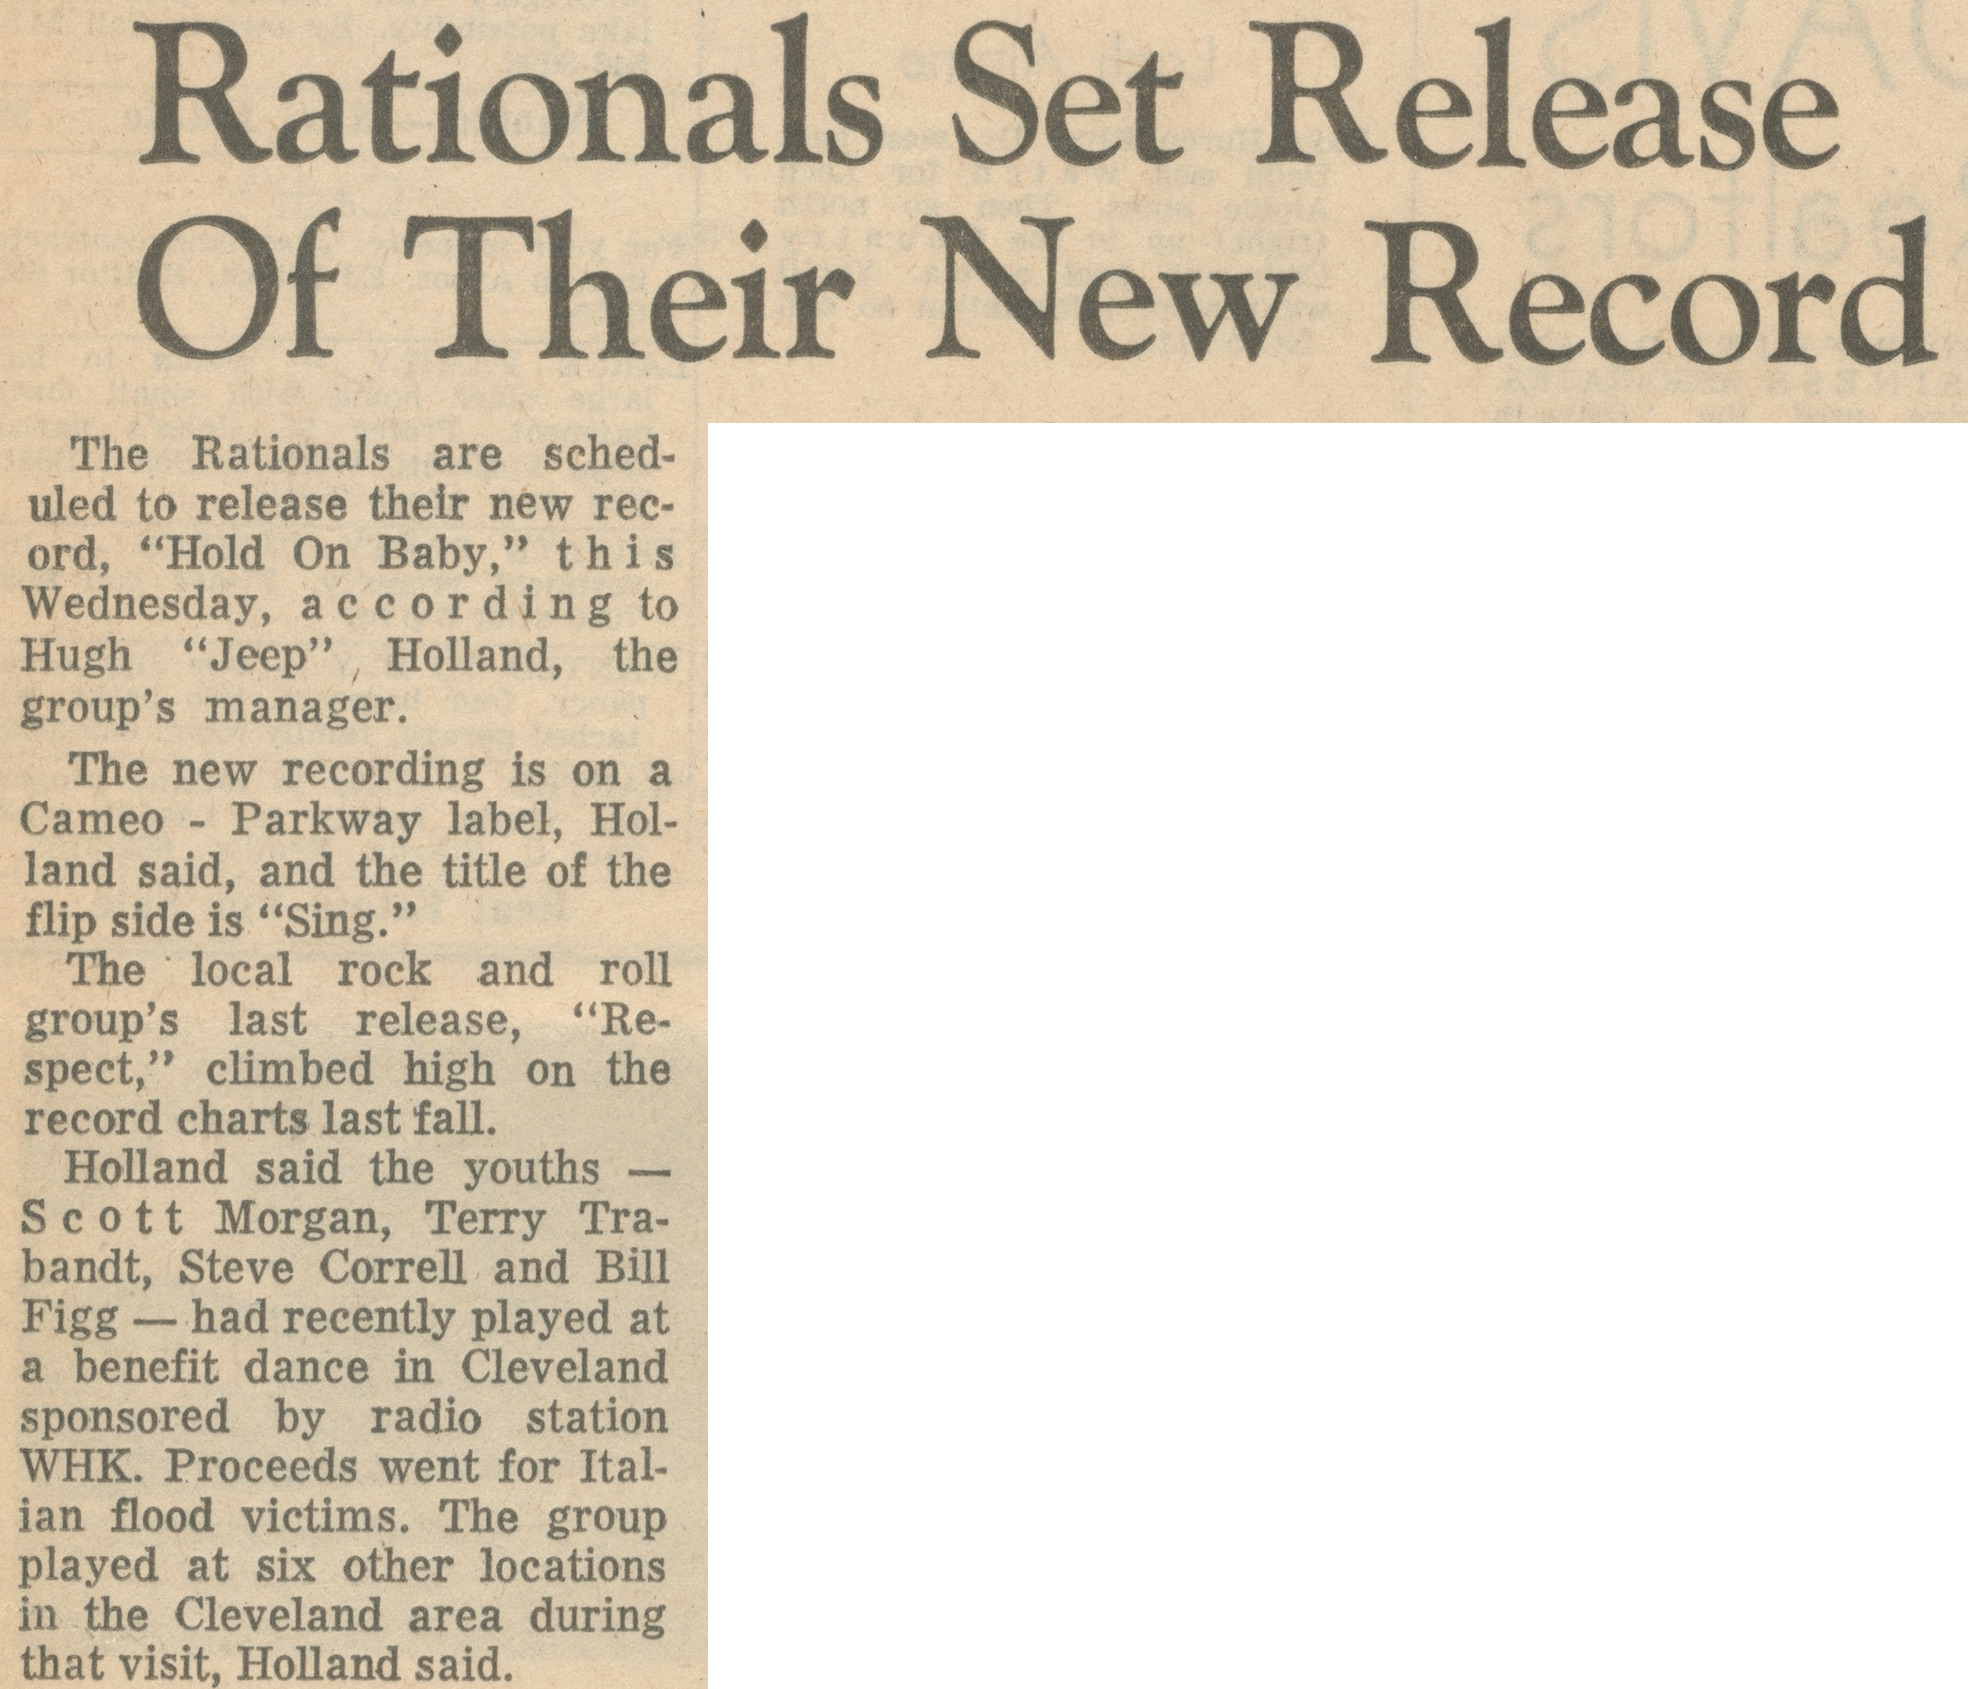 Rationals Set Release Of Their New Record image